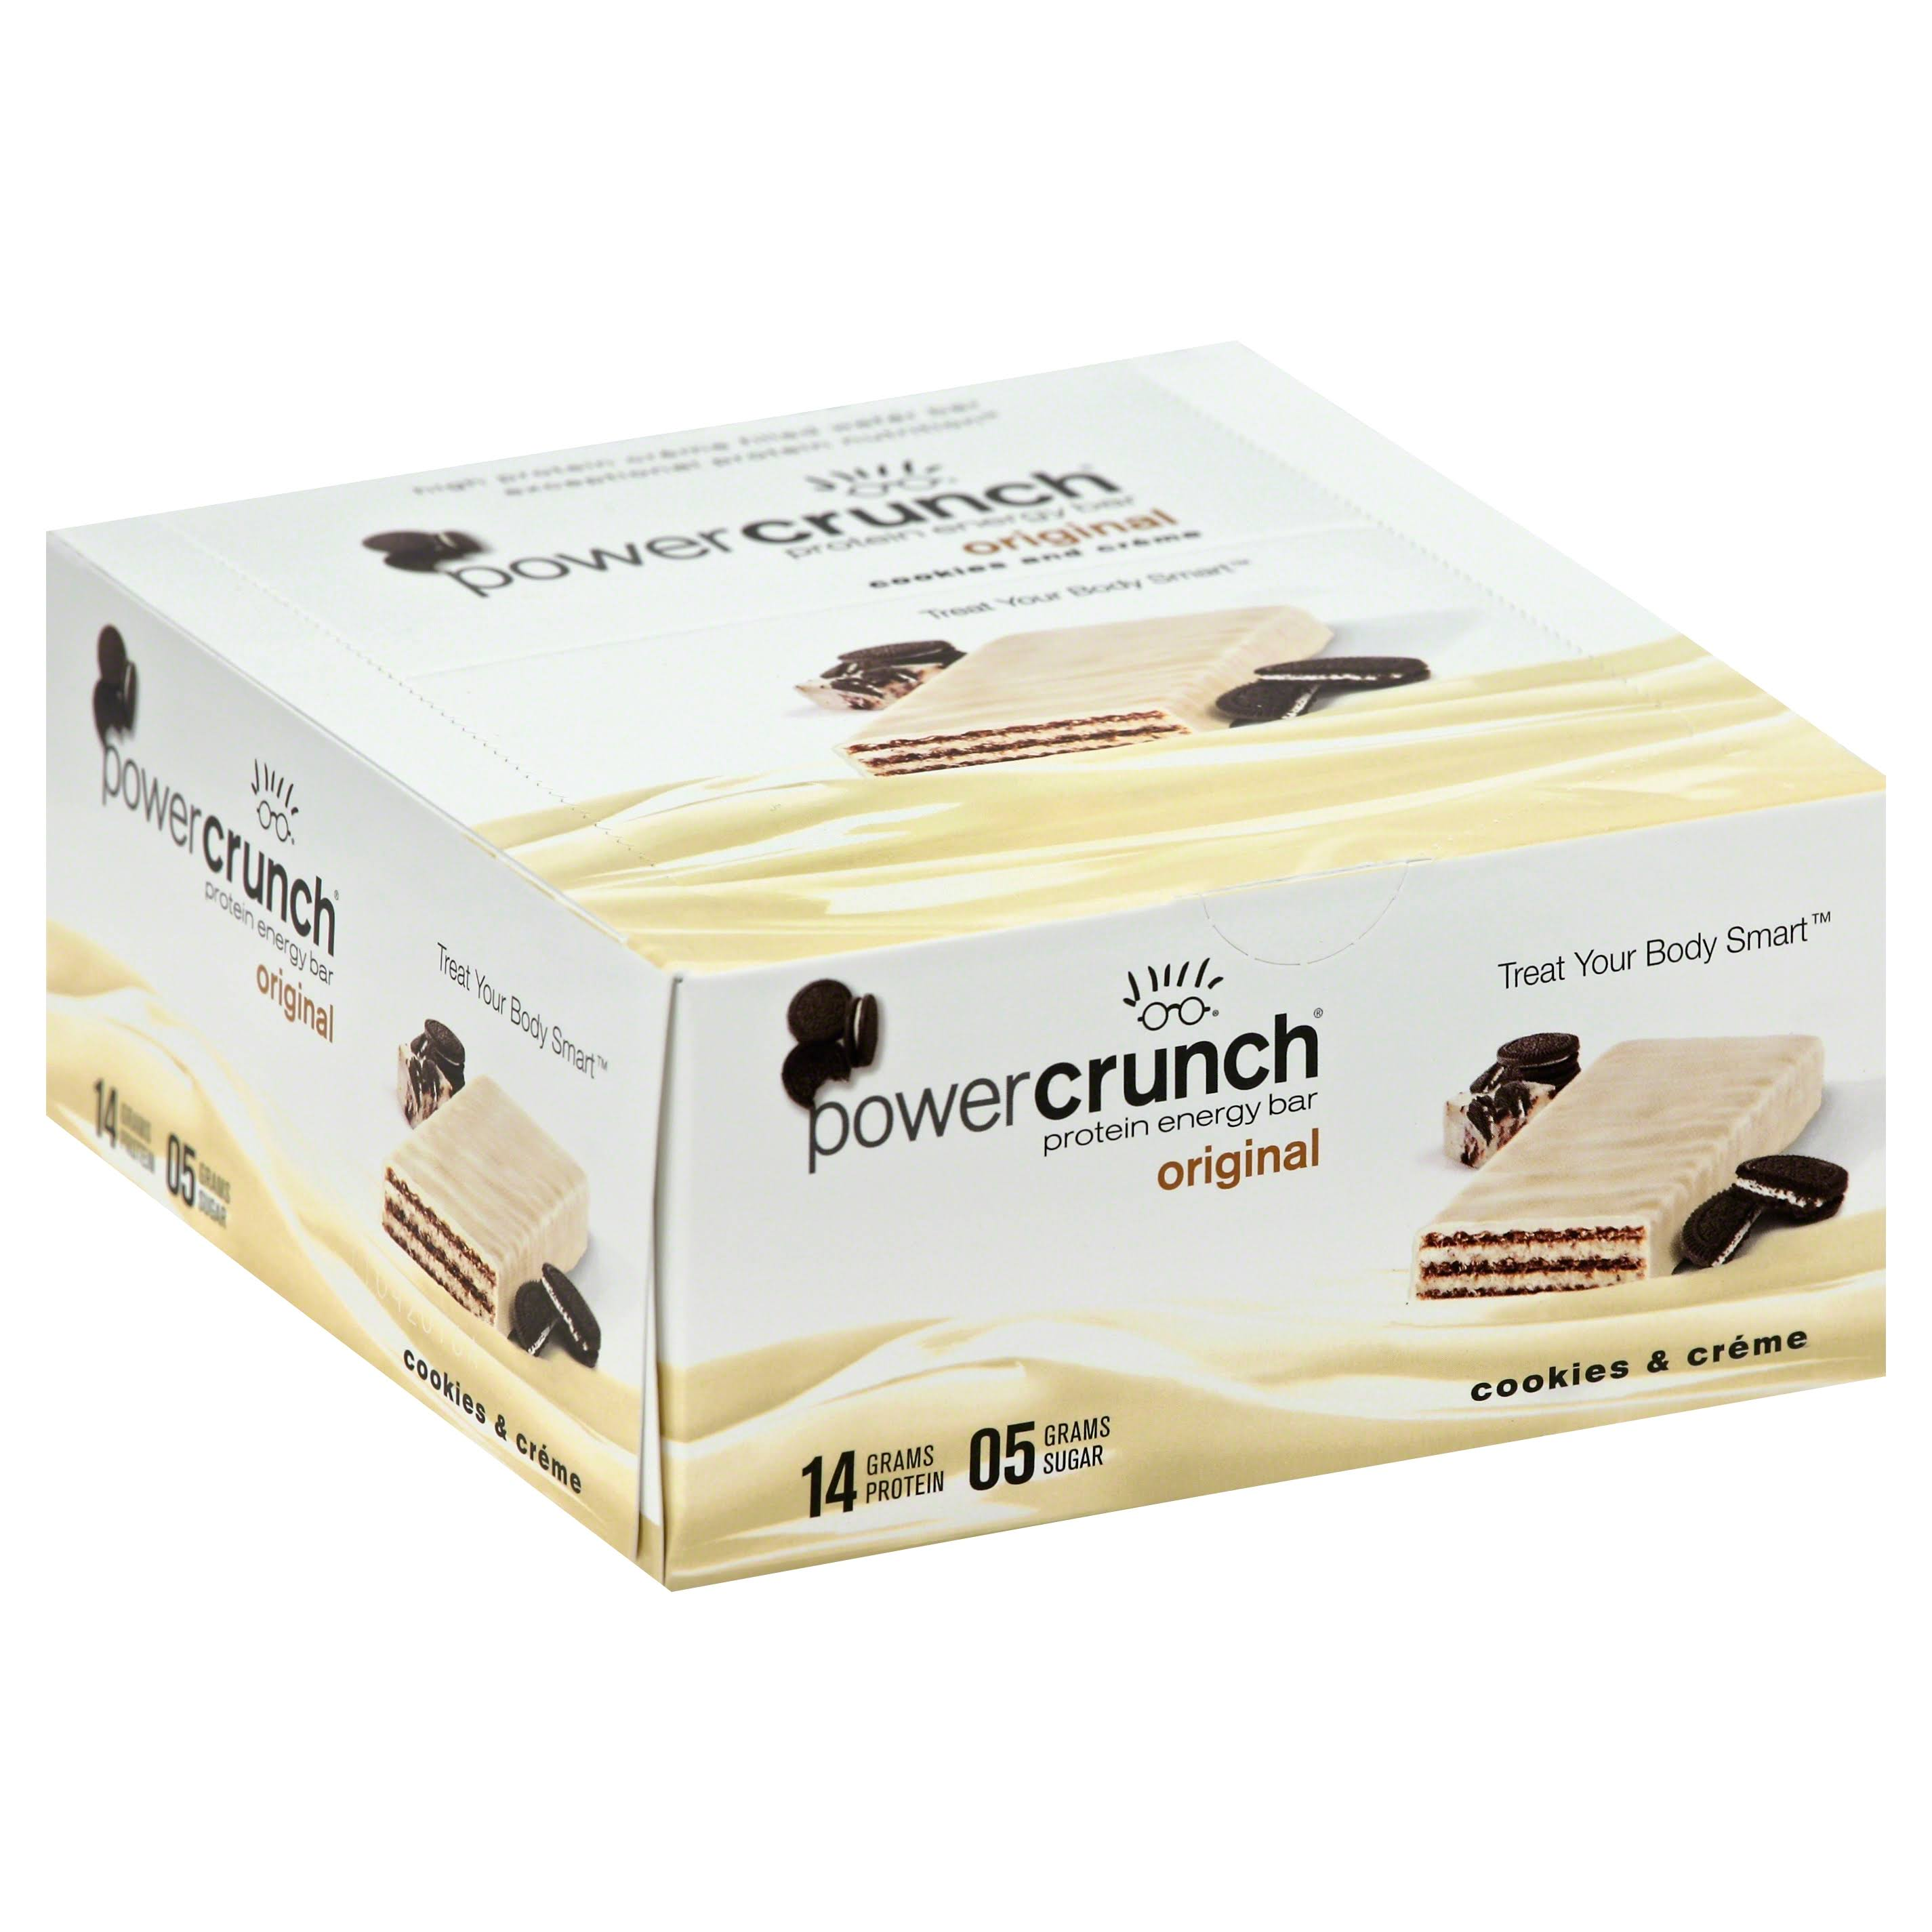 Power Crunch Protein Energy Bar - Cookies & Cream